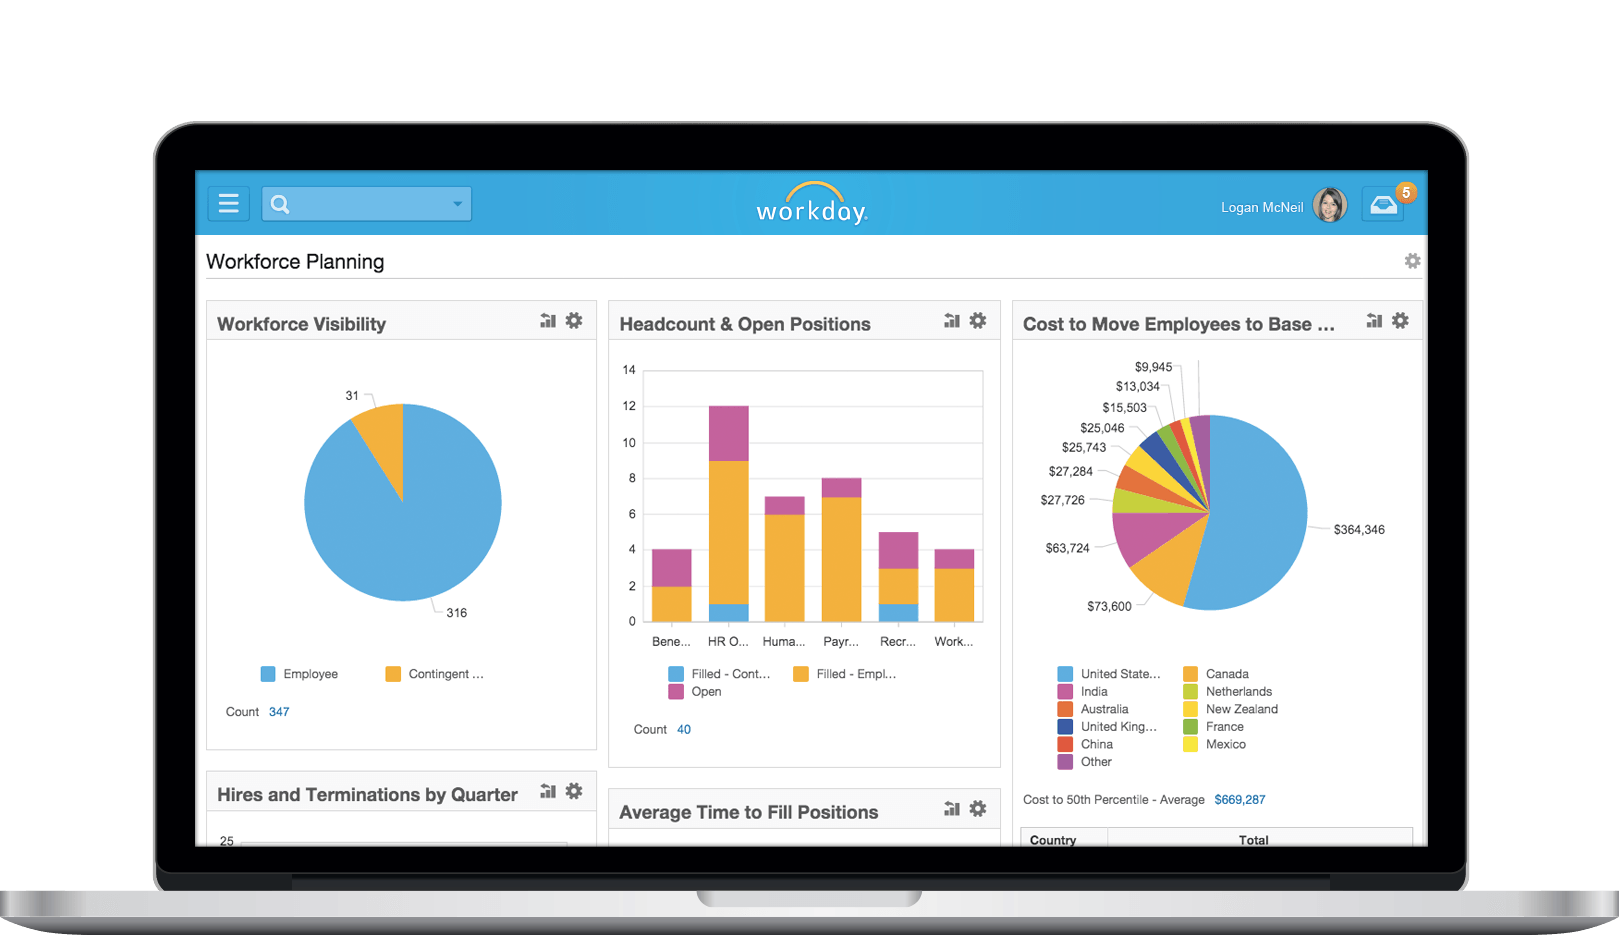 workday HCM interface